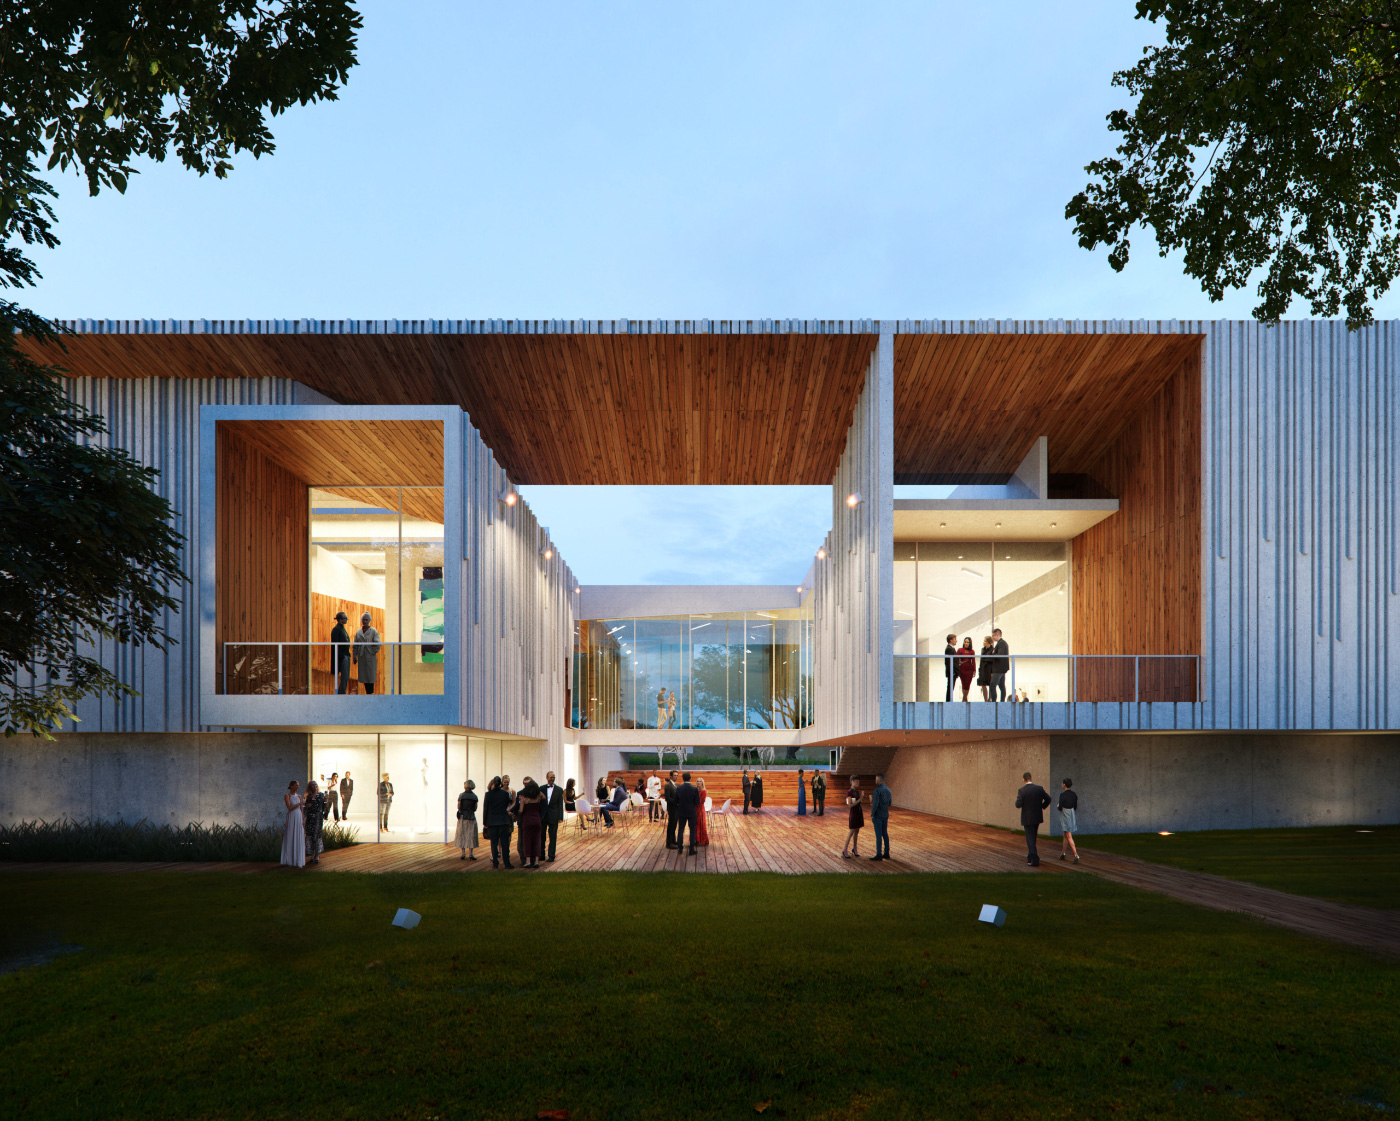 Rendering of the Menello Museum in Florida by Brooks + Scarpa